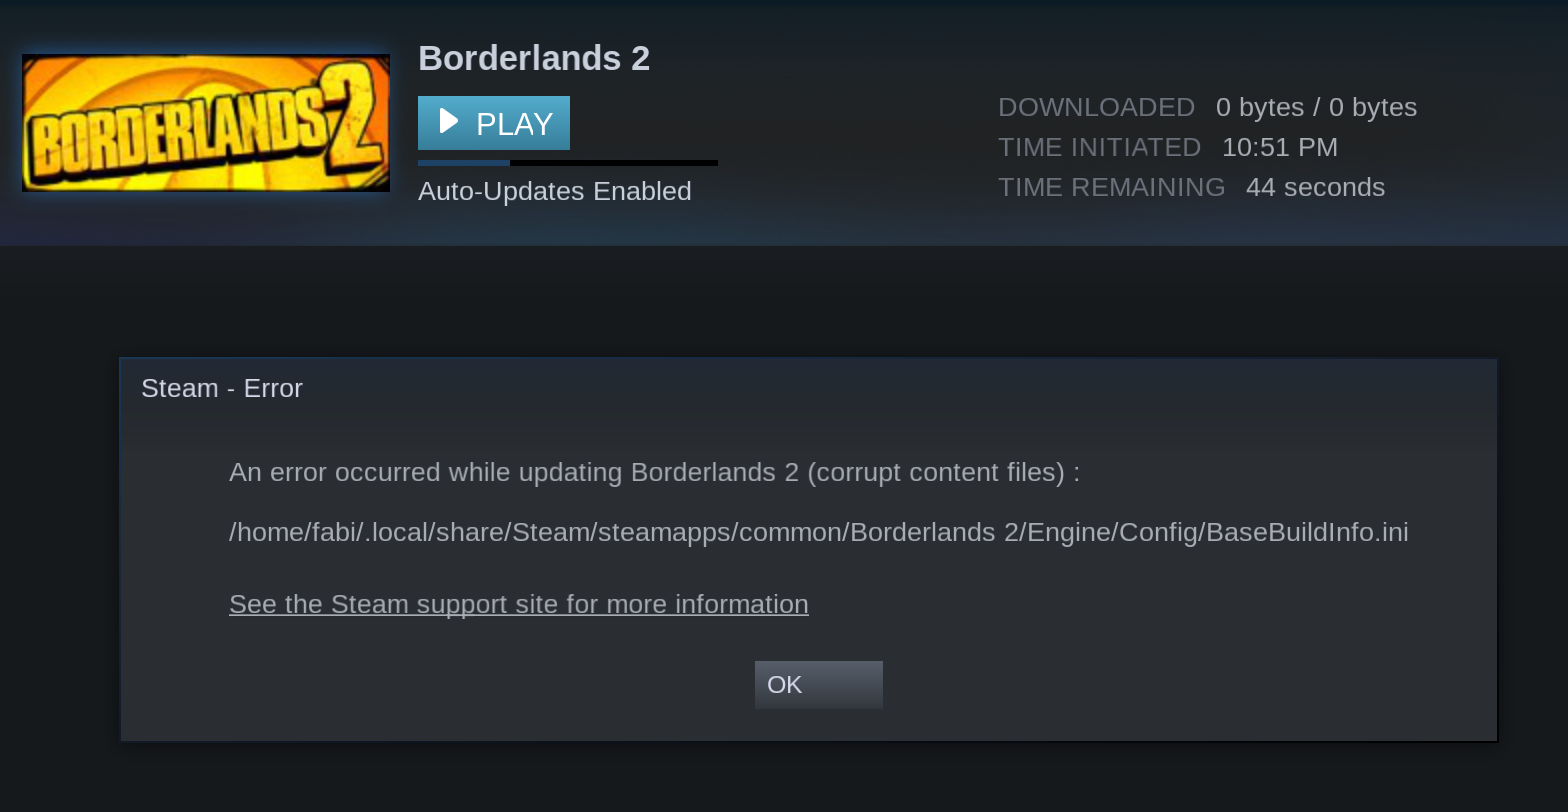 Borderlands 2 proton is not installable · Issue #370 · flathub/com